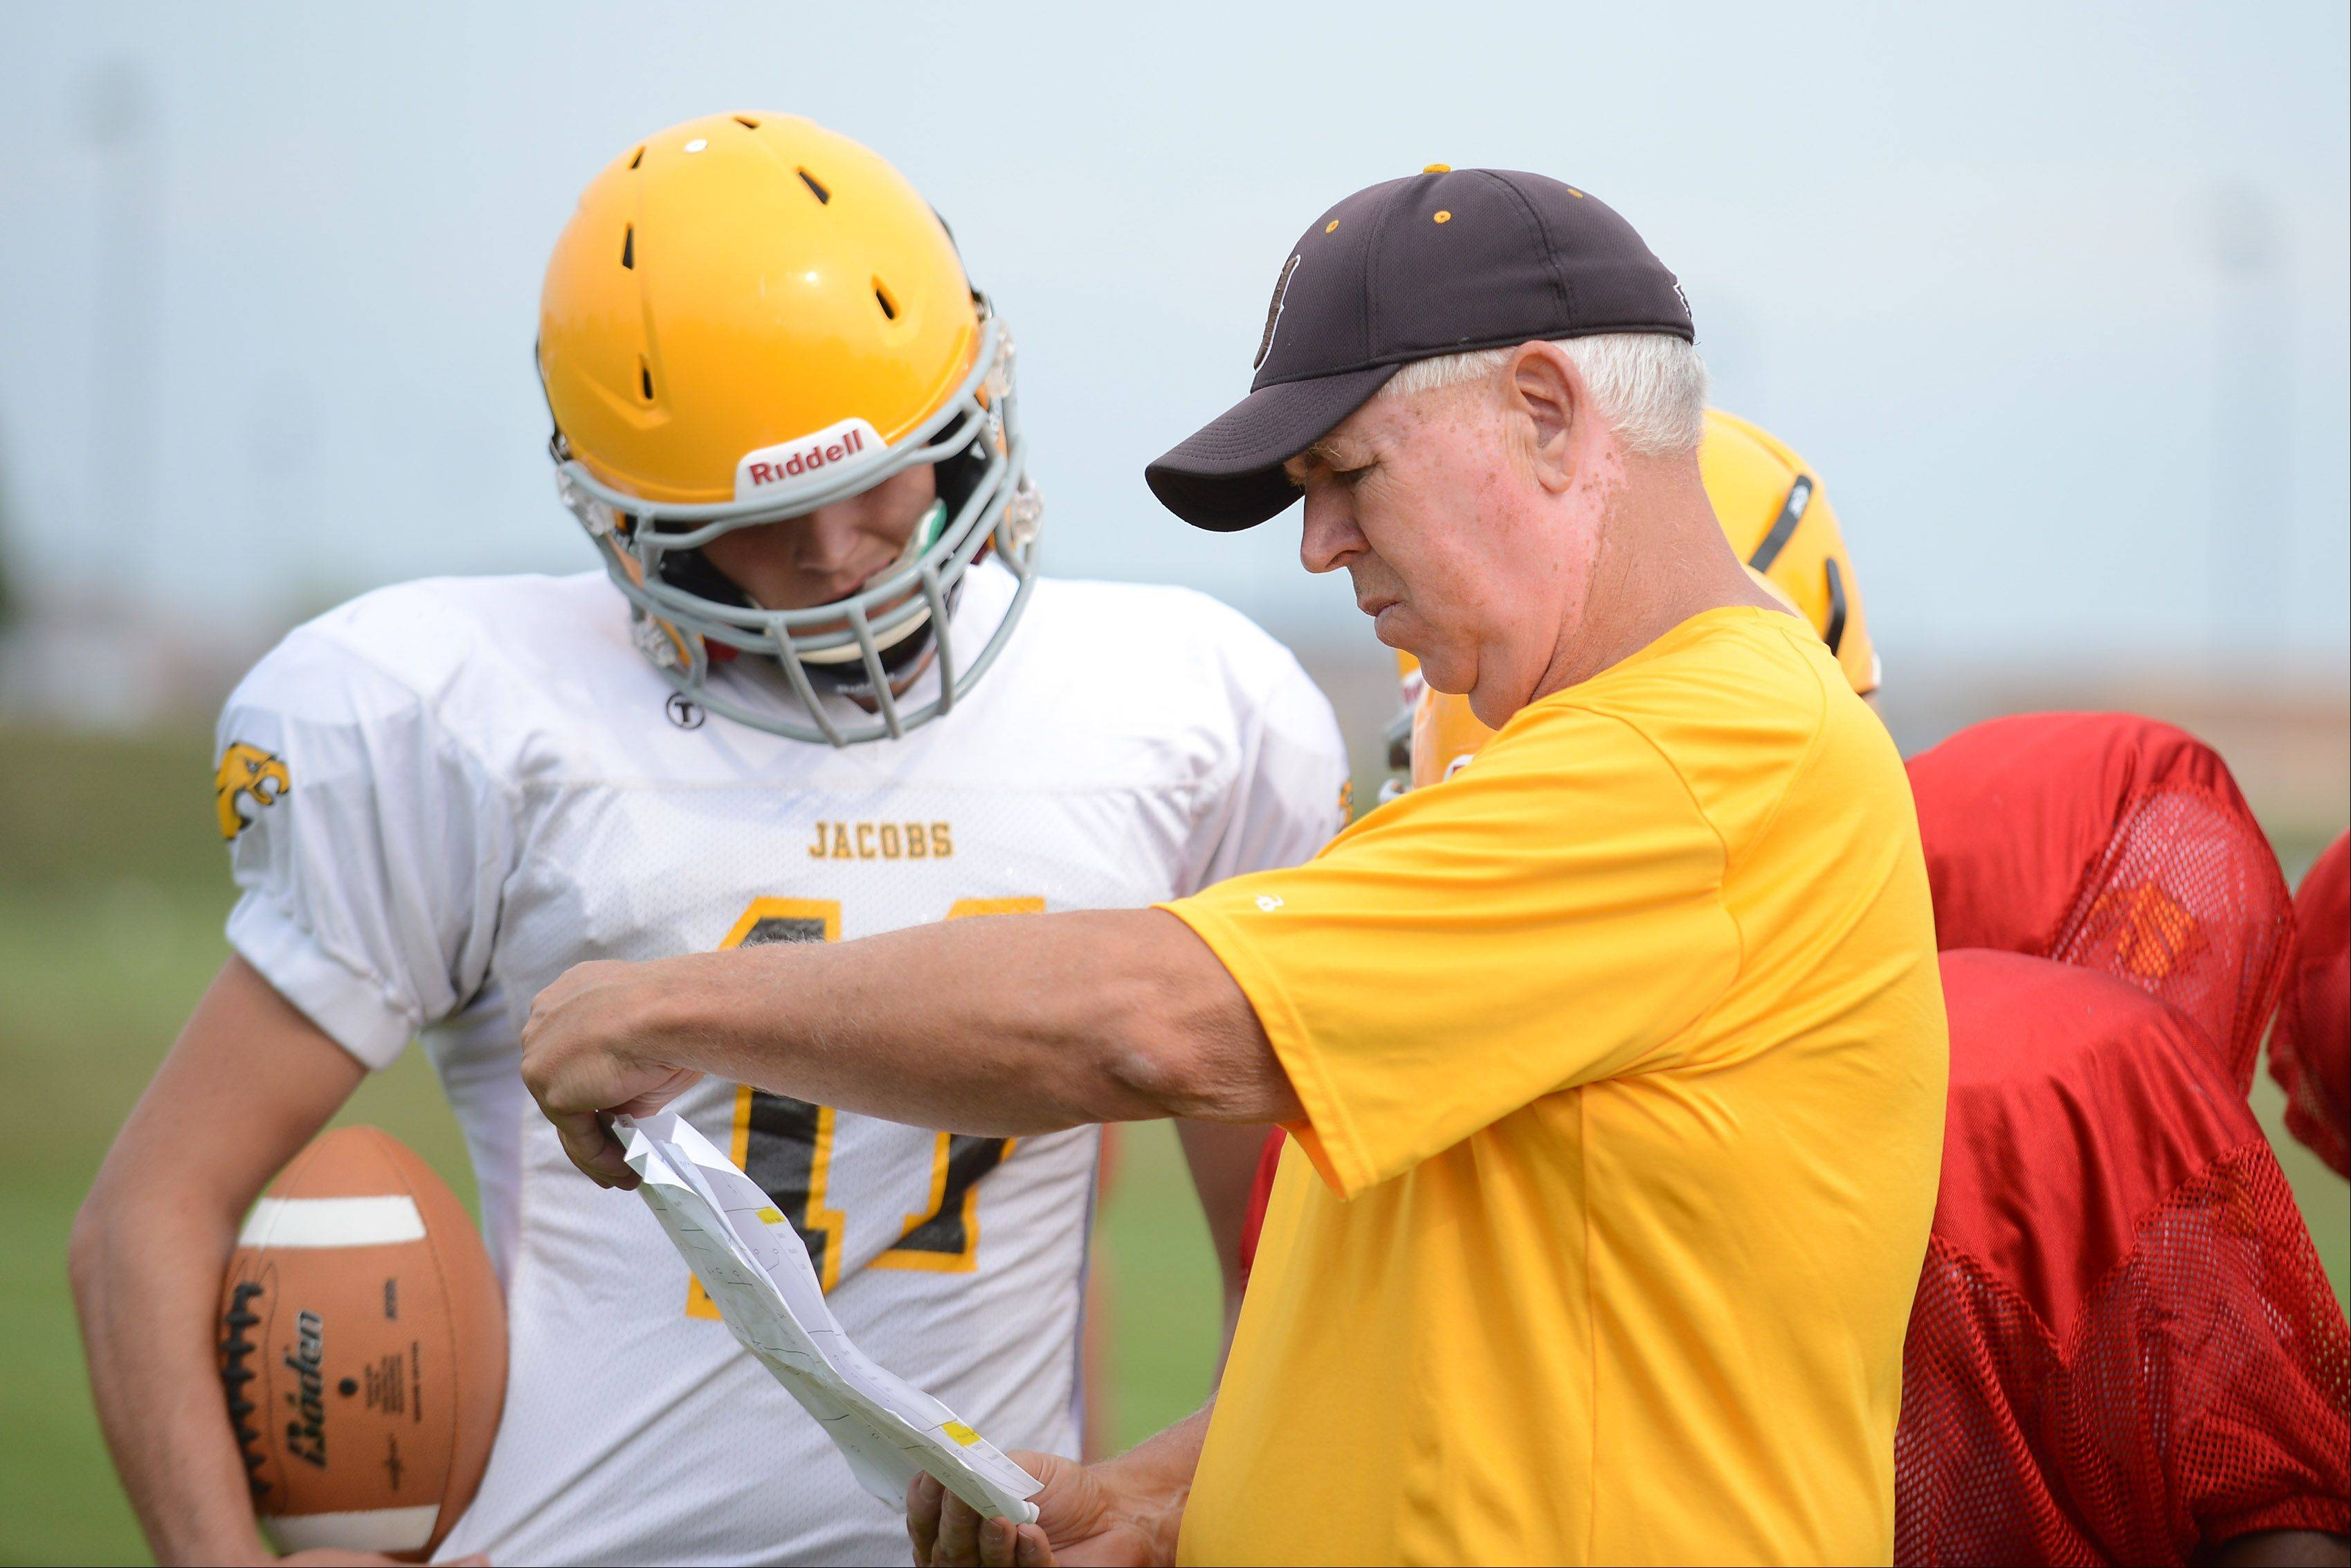 Jacobs senior quarterback Bret Mooney and Golden Eagles coach Bill Mitz go over a play during a preseason practice. Mooney enters Friday's game against Woodstock just shy of 3,000 yards passing in his high school career.